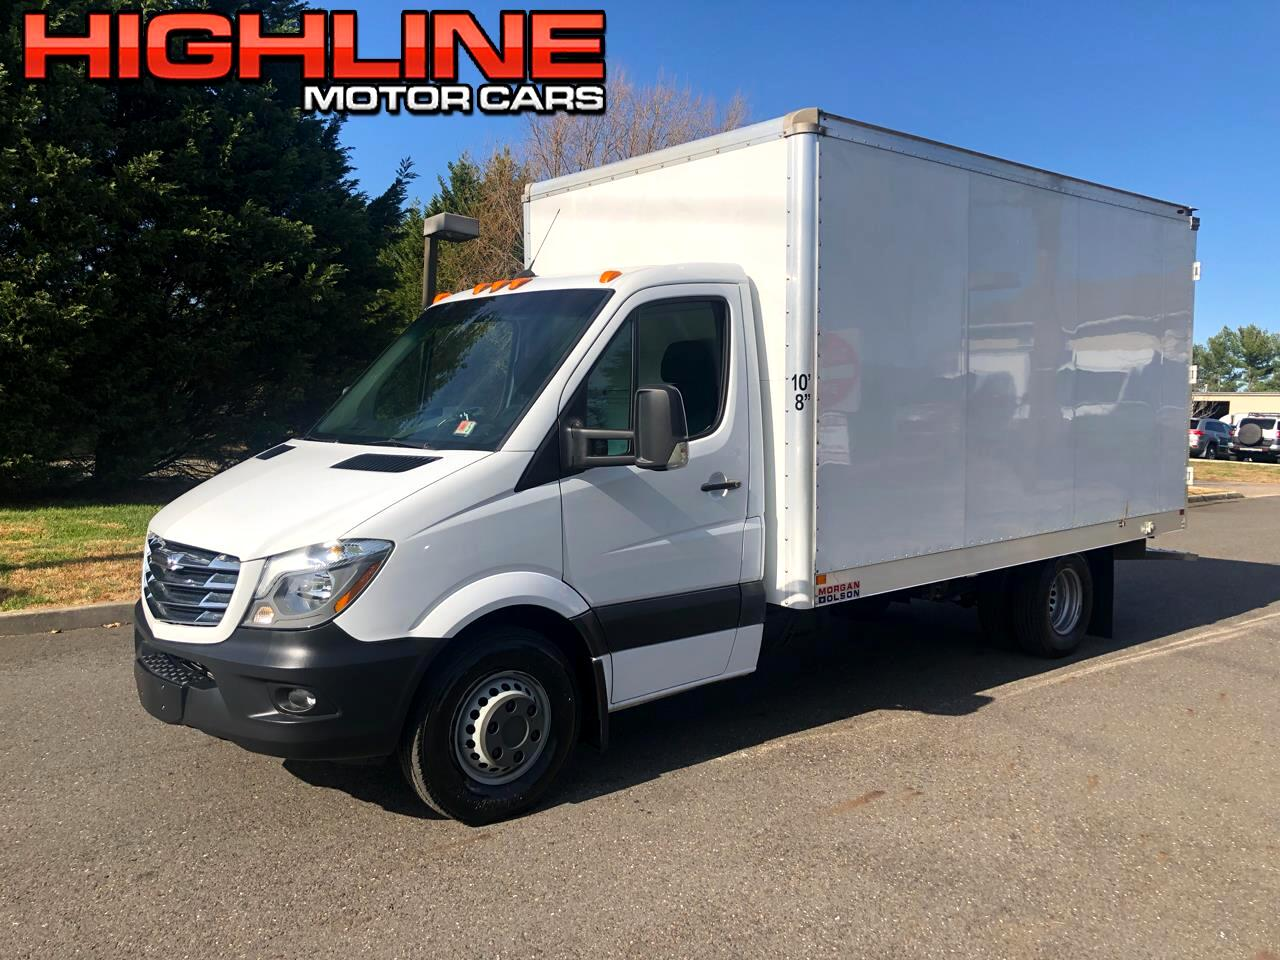 Mercedes-Benz Sprinter Chassis-Cabs  2015